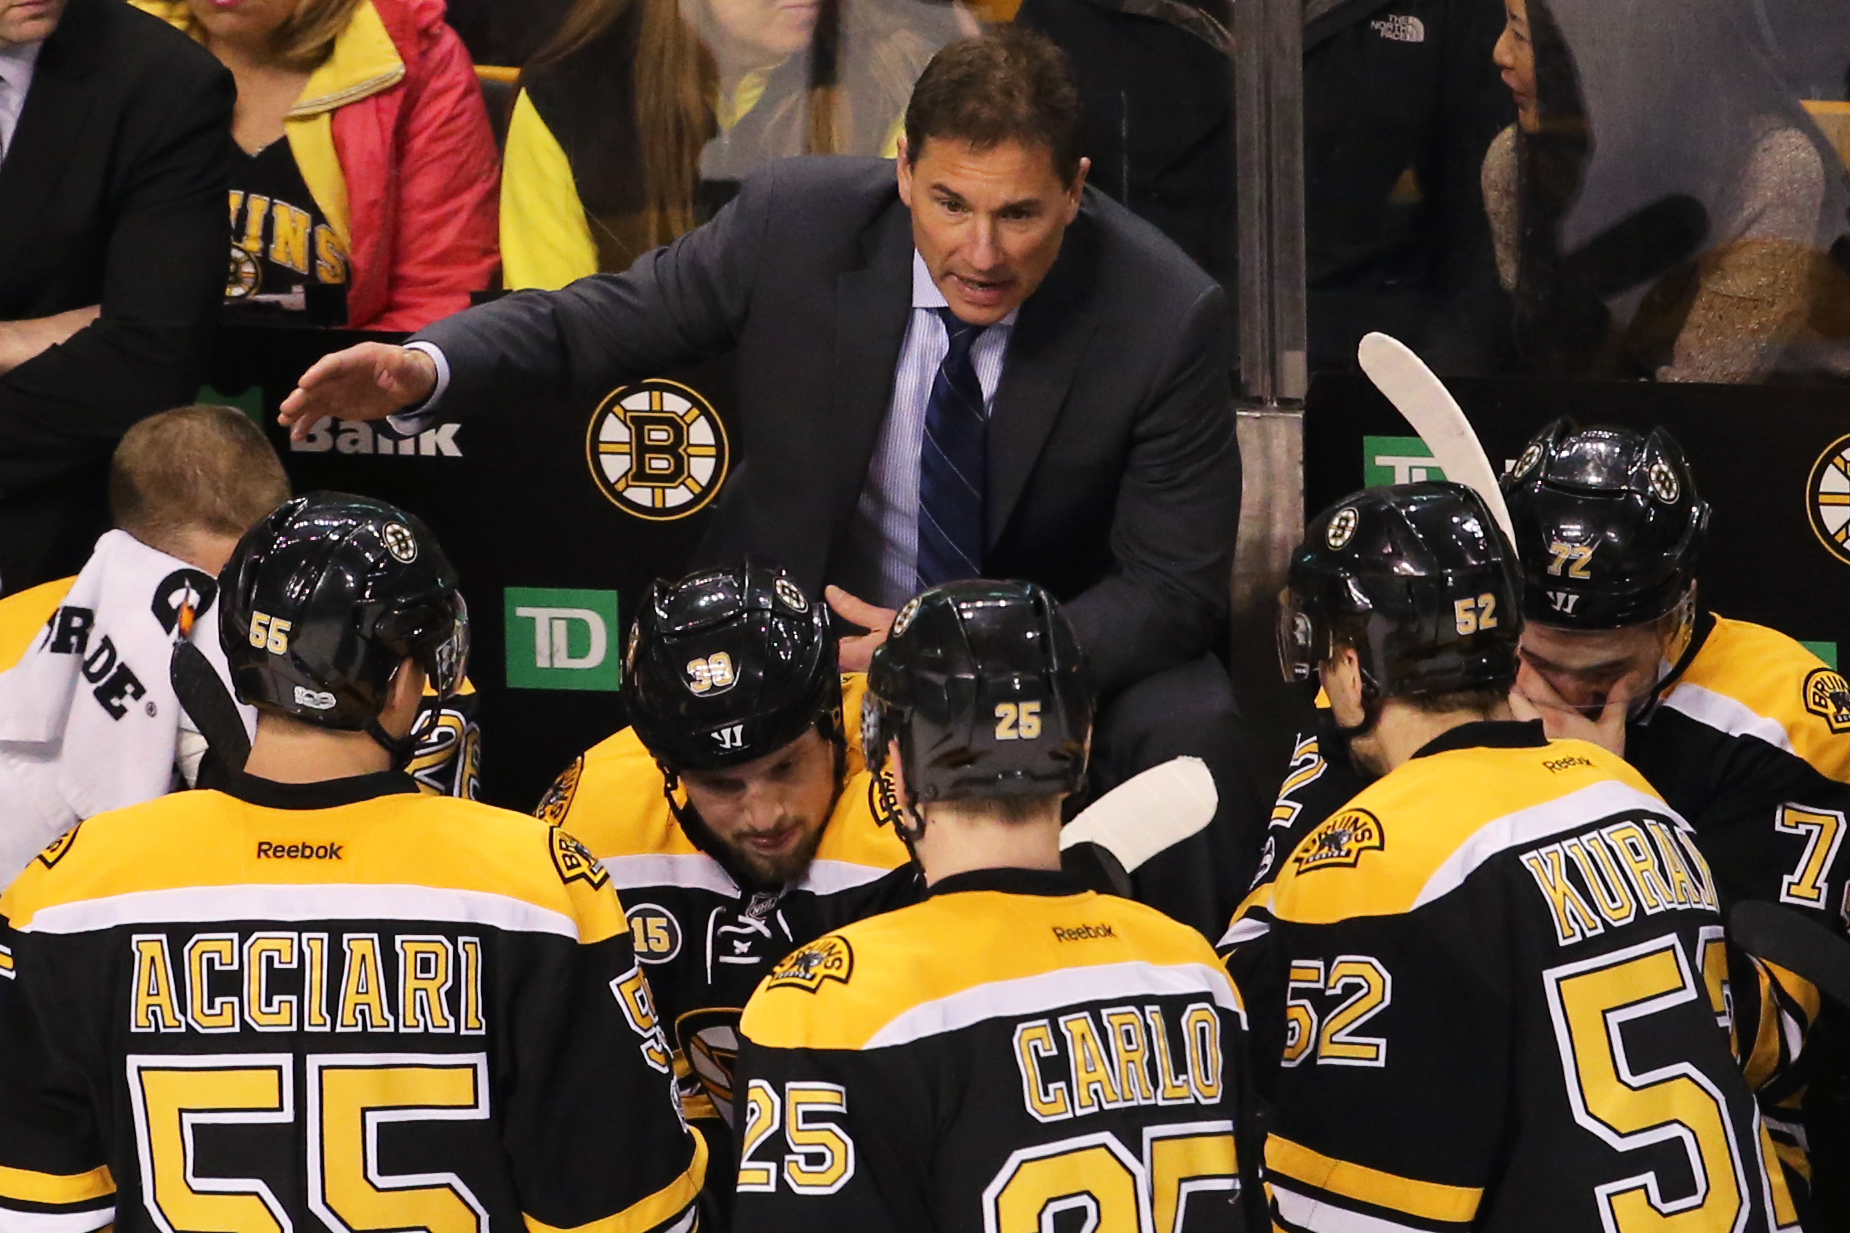 BOSTON, MA - APRIL 6: Boston Bruins head coach Bruce Cassidy speaks with his team during a timeout during the third period against the Ottawa Senators at TD Garden on April 6, 2017 in Boston, Massachusetts. (Photo by Maddie Meyer/Getty Images)